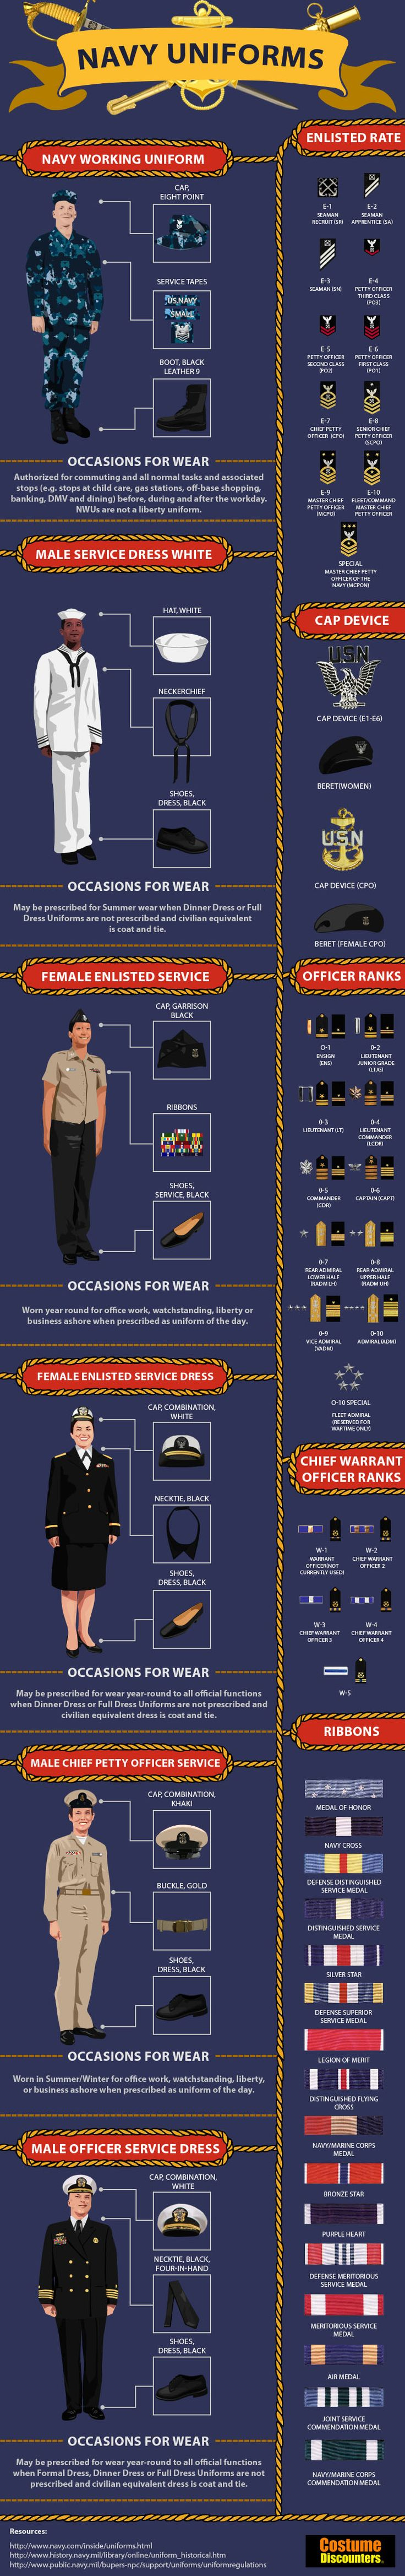 US Navy Uniform Infographic. We're a Marine family, but I see a lot of Navy personnel on base and need to learn these uniforms as well.